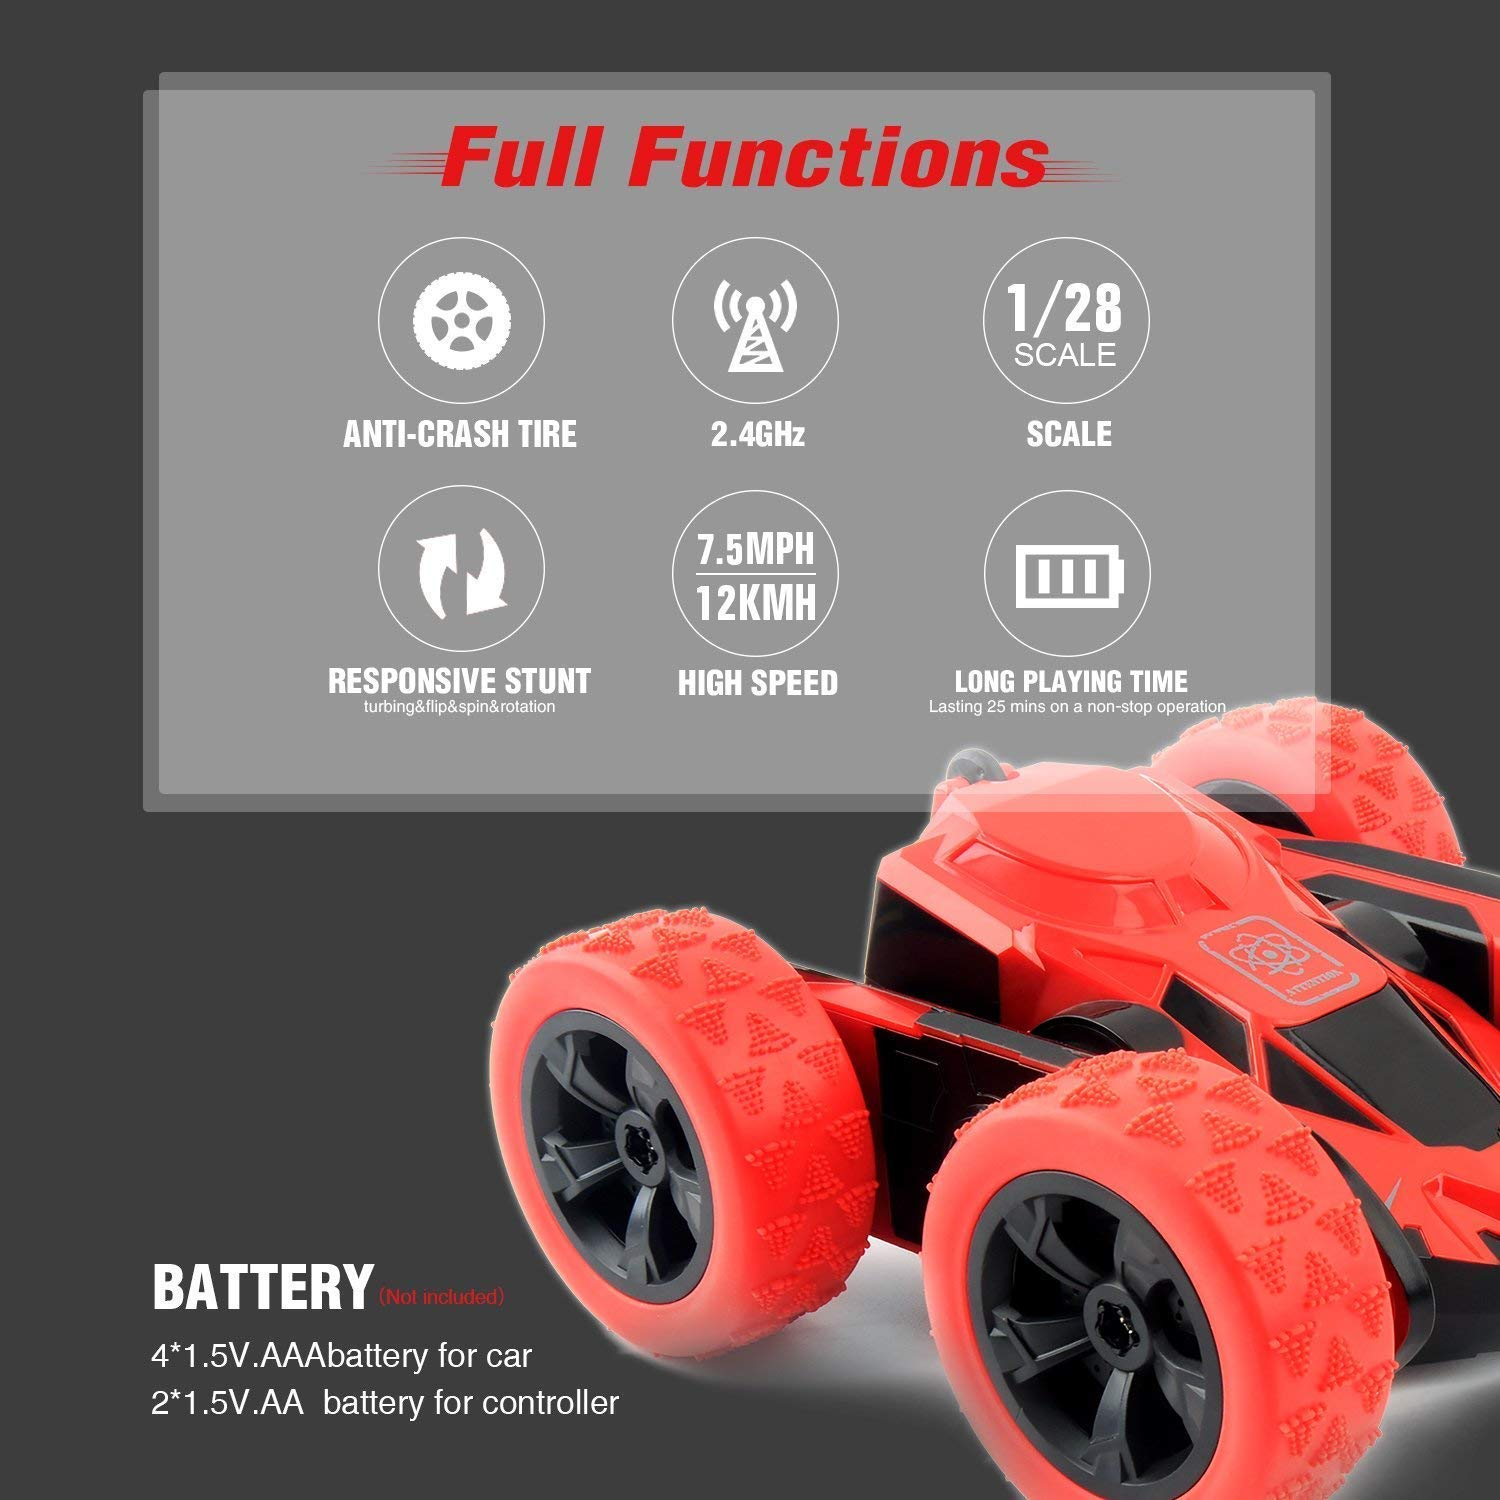 RC Cars Stunt Car Toy, Amicool 4WD 2.4Ghz Remote Control Car Double Sided Rotating Vehicles 360° Flips, Kids Toy Cars for Boys & Girls Birthday by Amicool (Image #2)